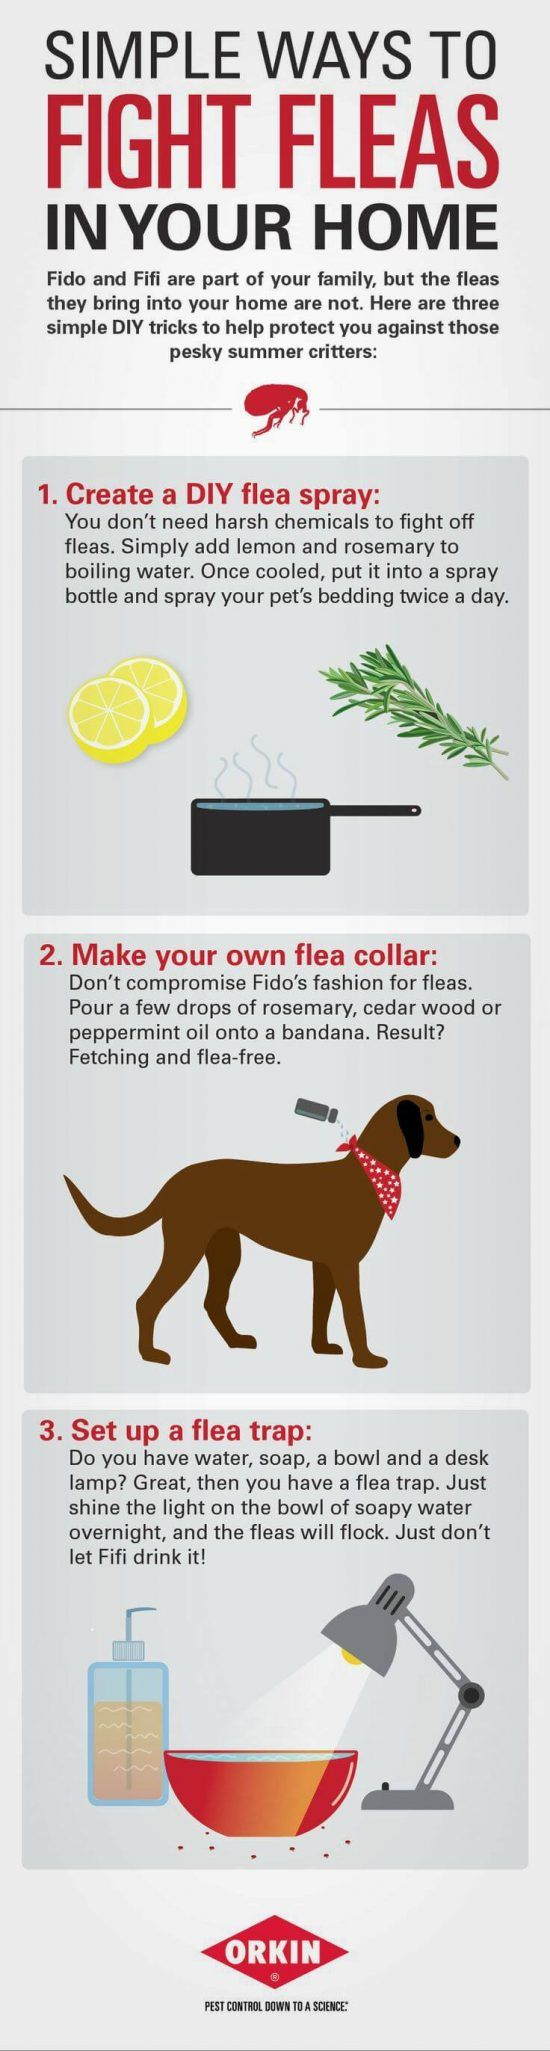 How To Get Rid Of Fleas In The House Video Tutorial ...